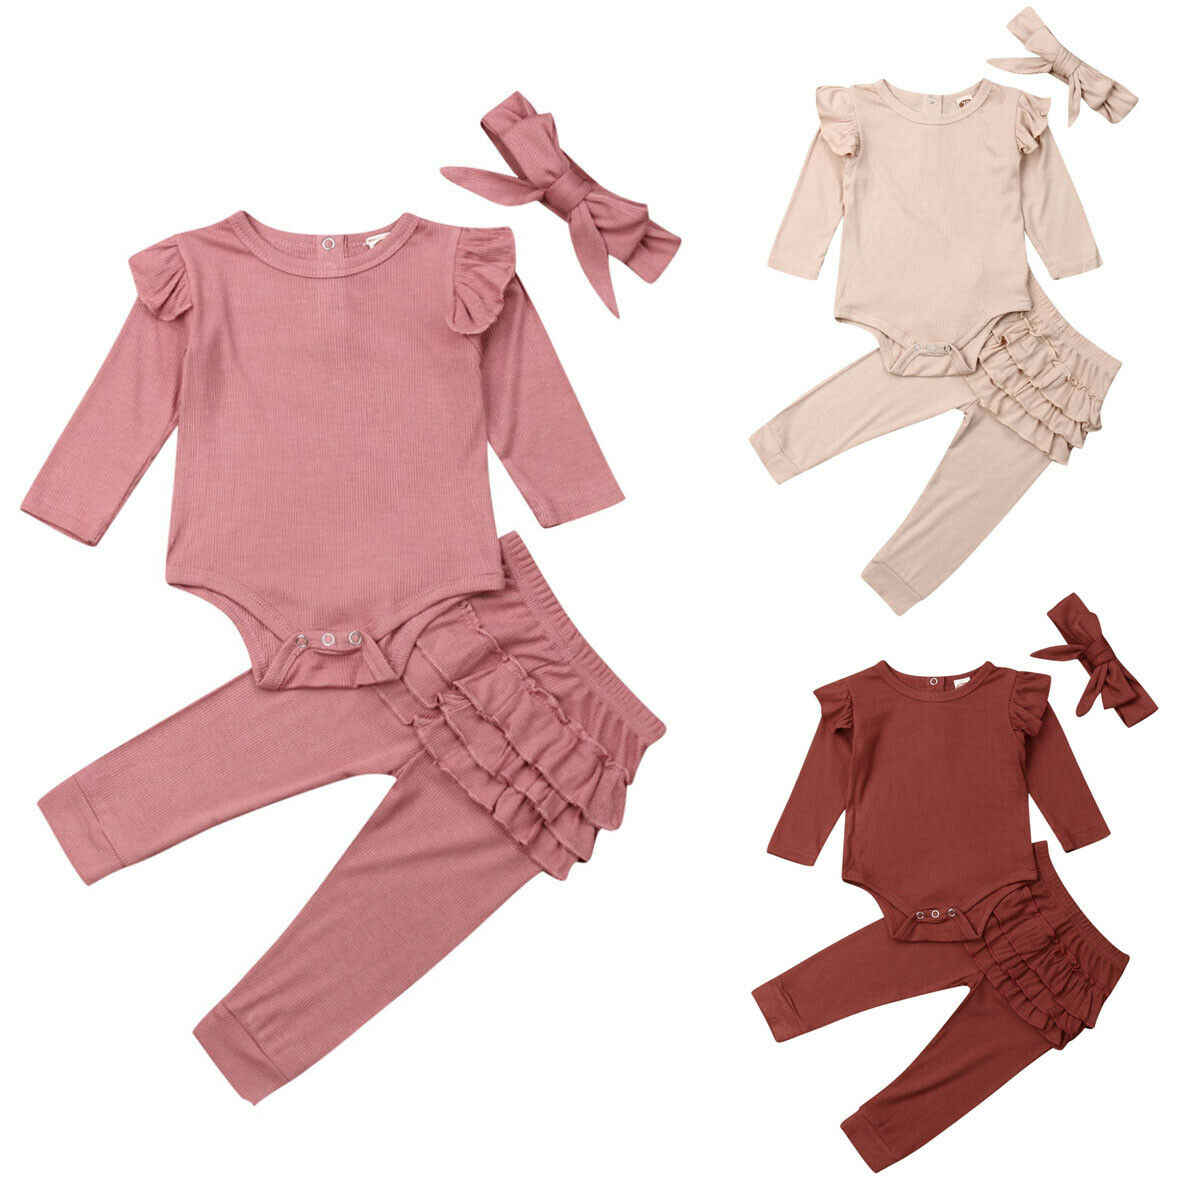 New 3Pcs Baby Girl Autumn Outfits Clothes Romper Top Ruffle Pants Headband Set